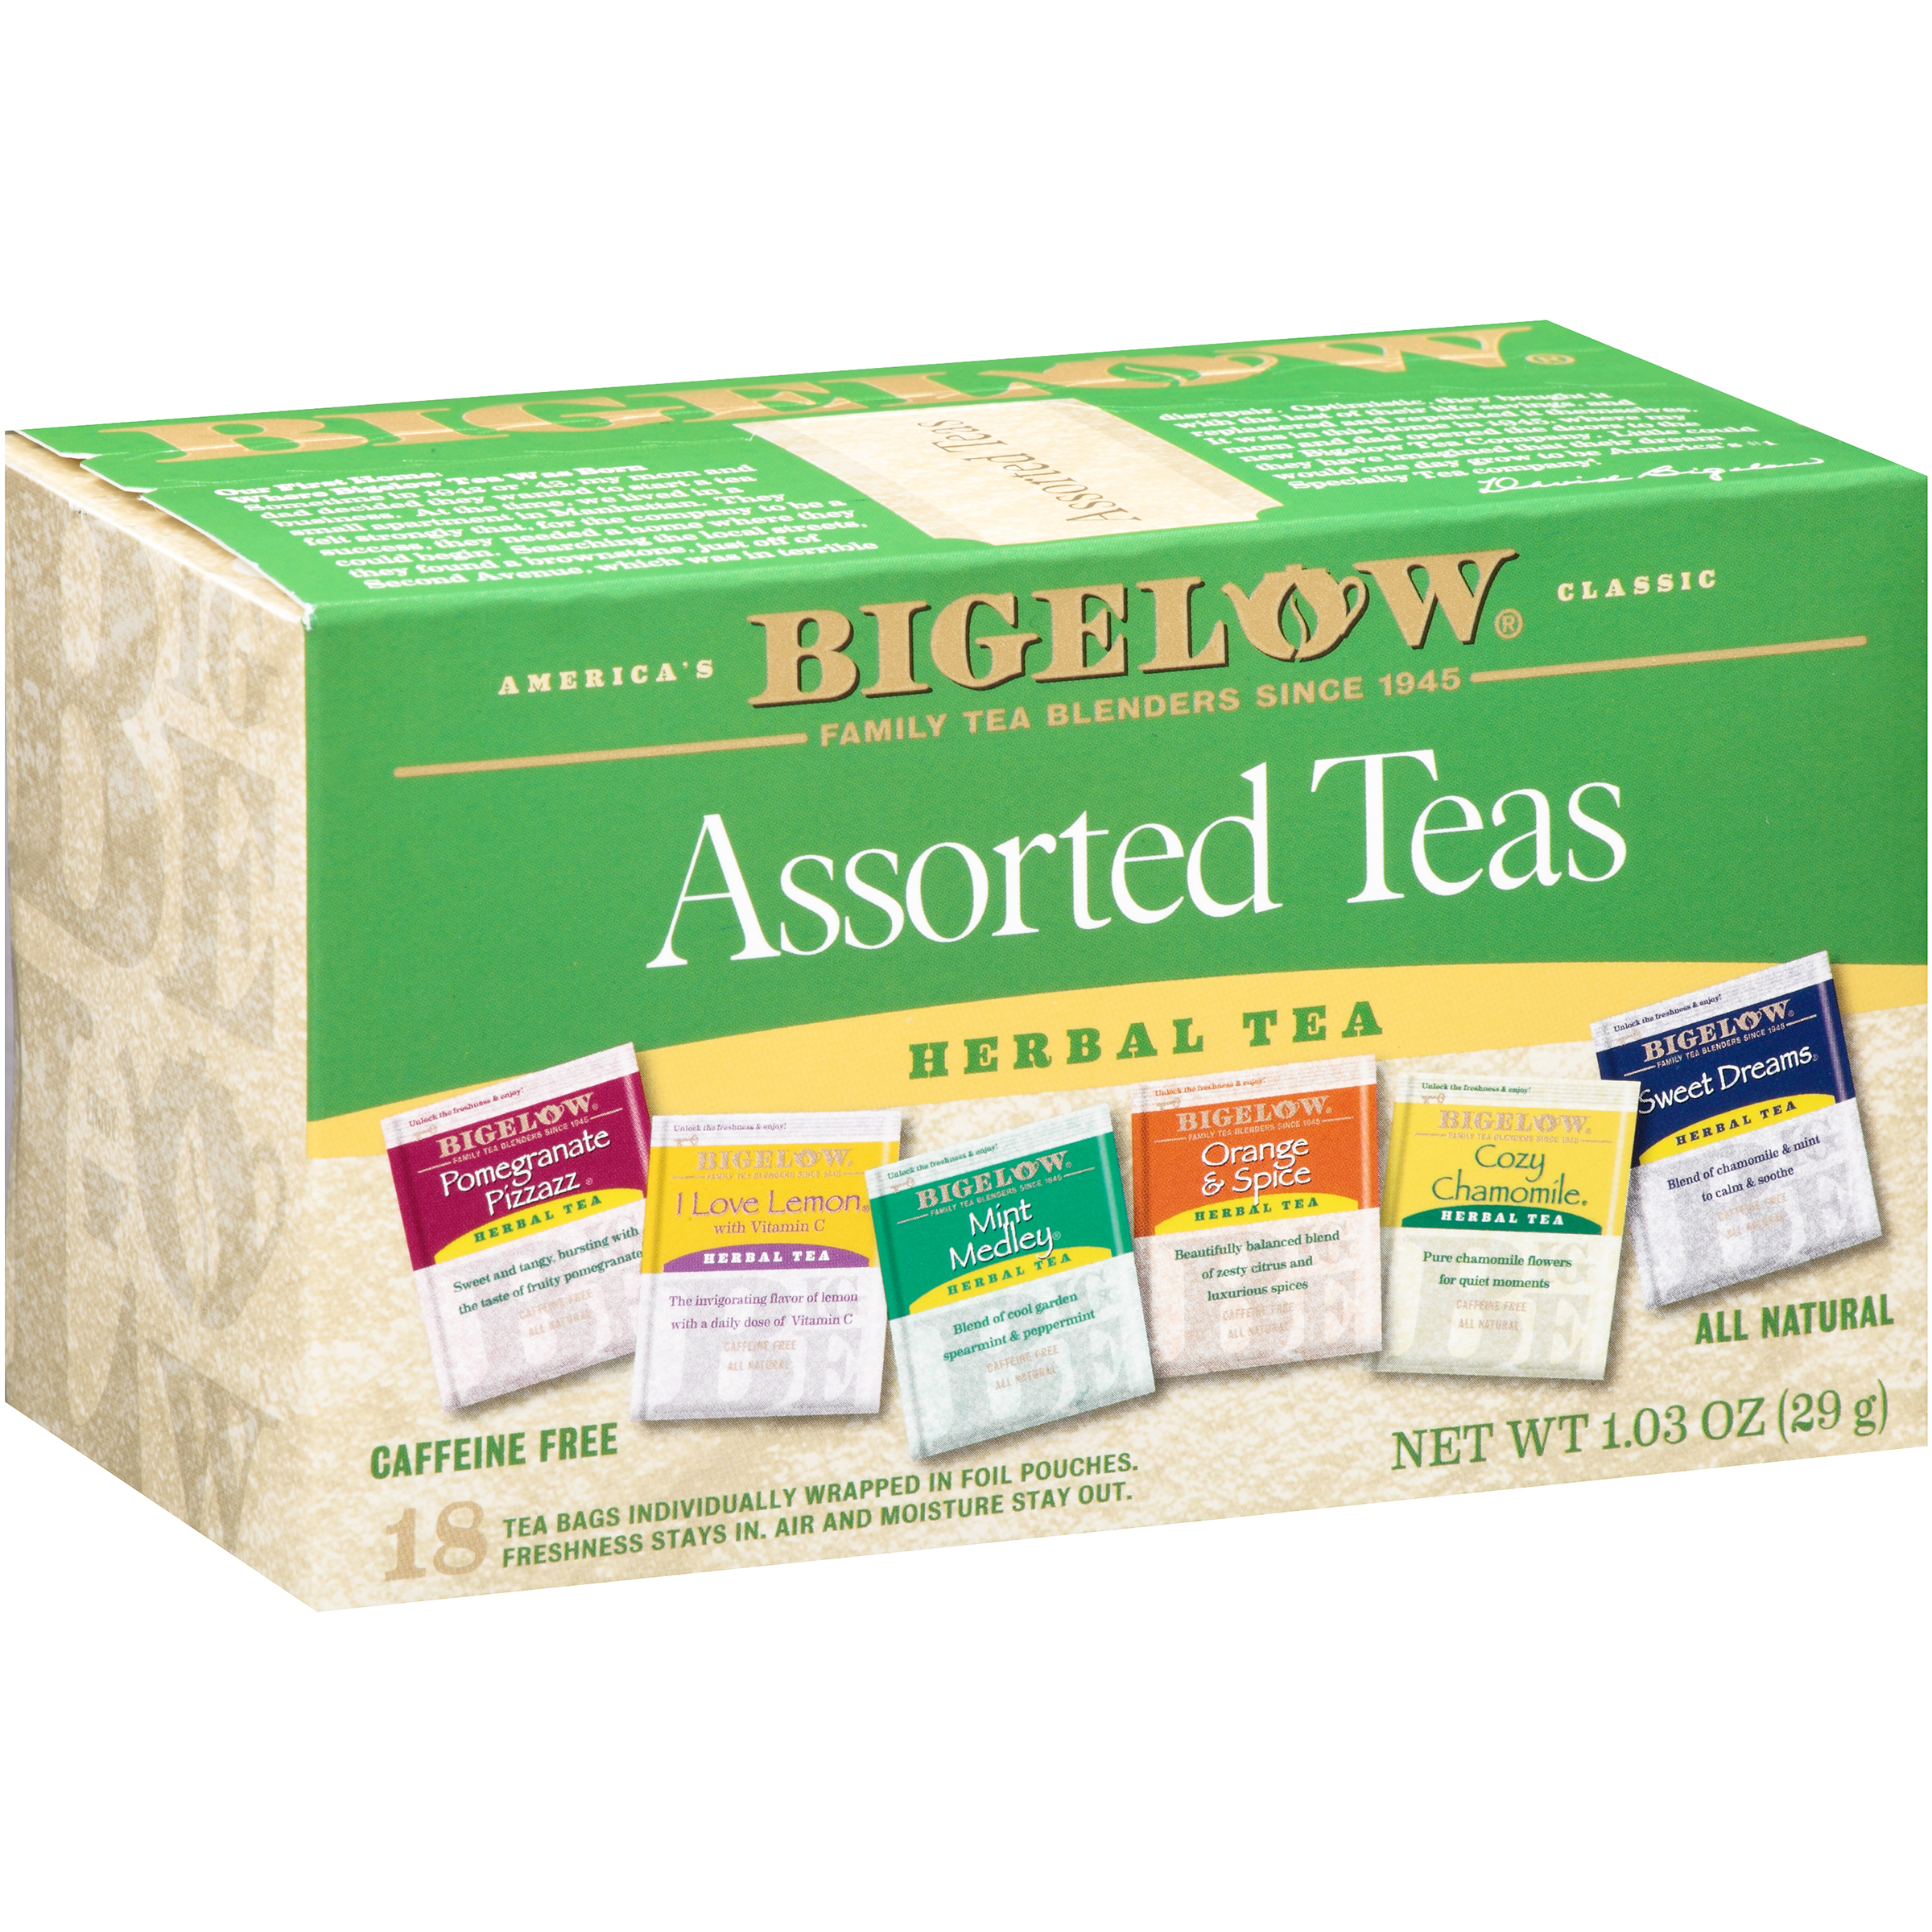 Bigelow® Assorted Teas Herbal Tea Bags 18 ct Box